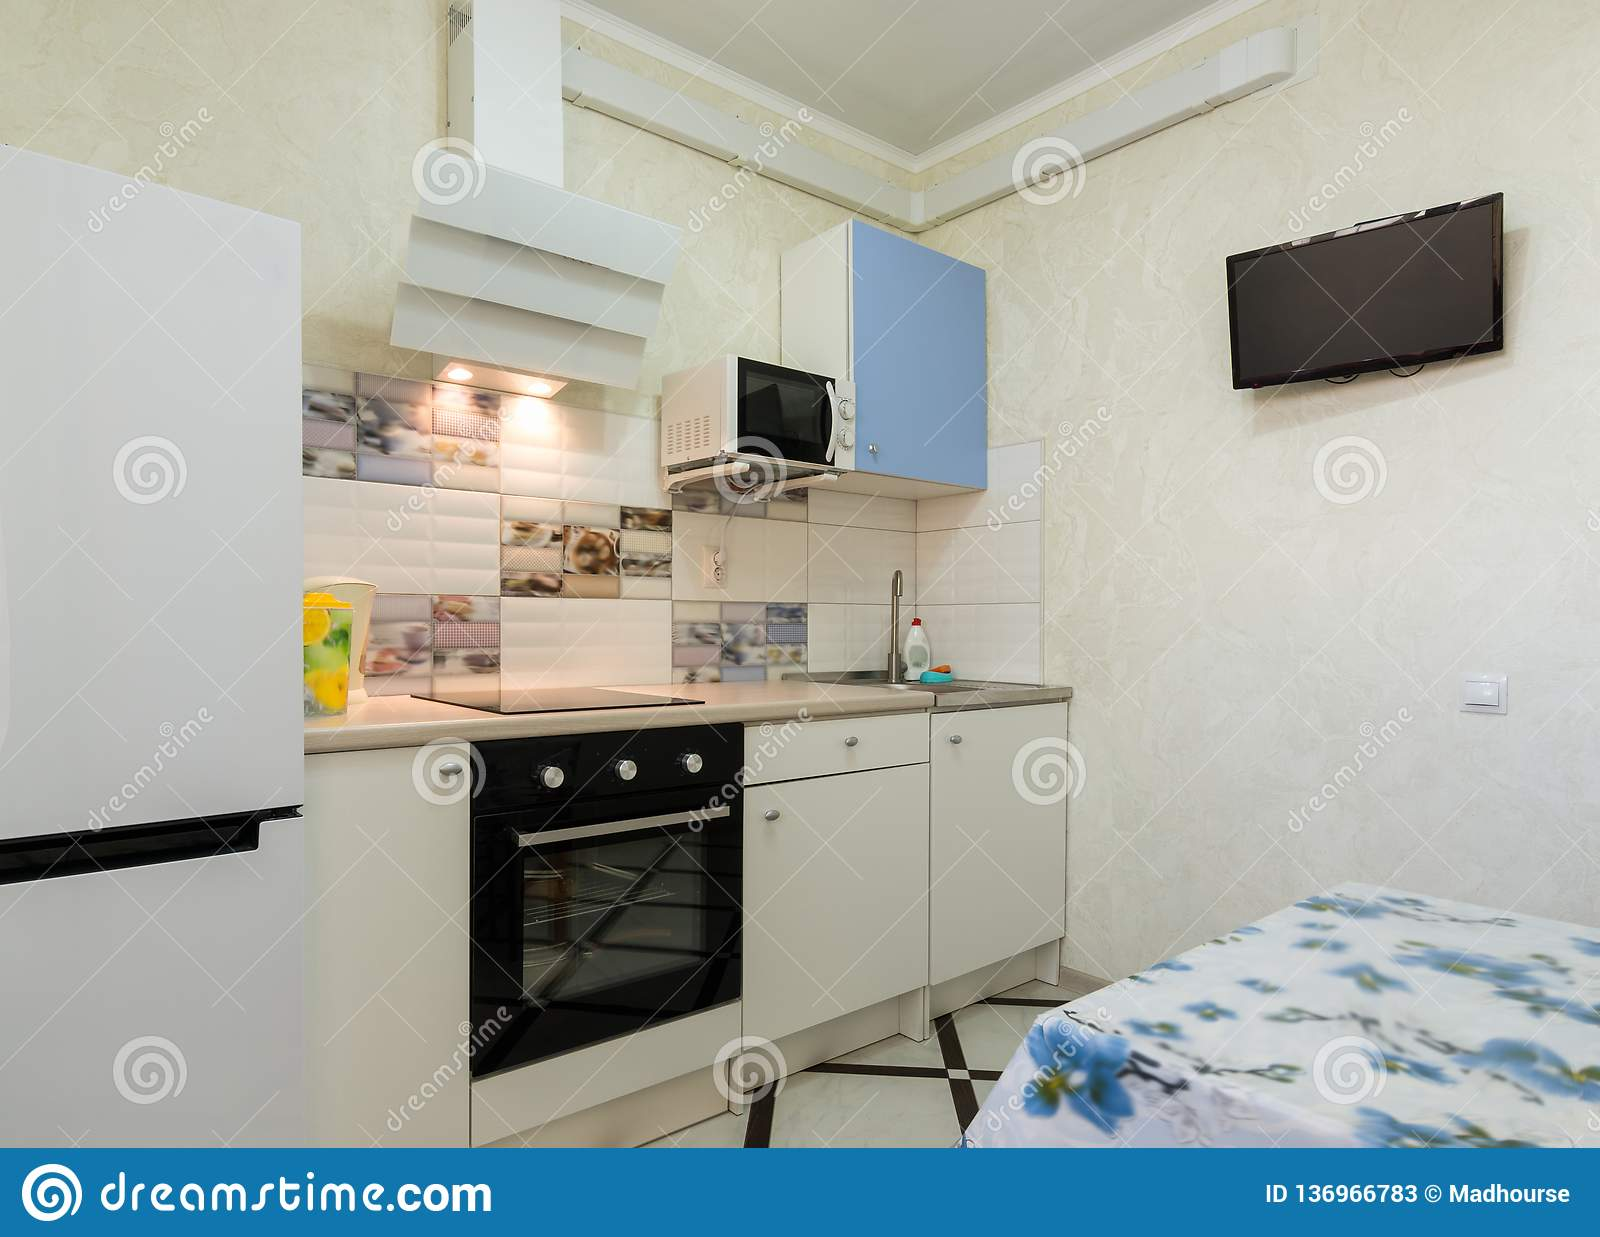 The Interior Of A Small Kitchen With A TV On The Wall Stock ...